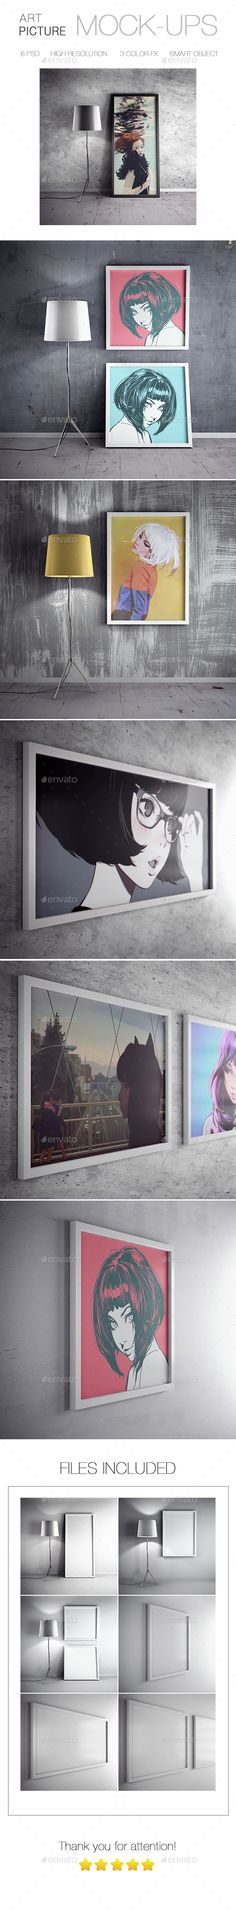 Picture Art Mockup — Photoshop PSD #gallery canvas #canvas mock-up • Available here → https://graphicriver.net/item/picture-art-mockup/15041600?ref=pxcr